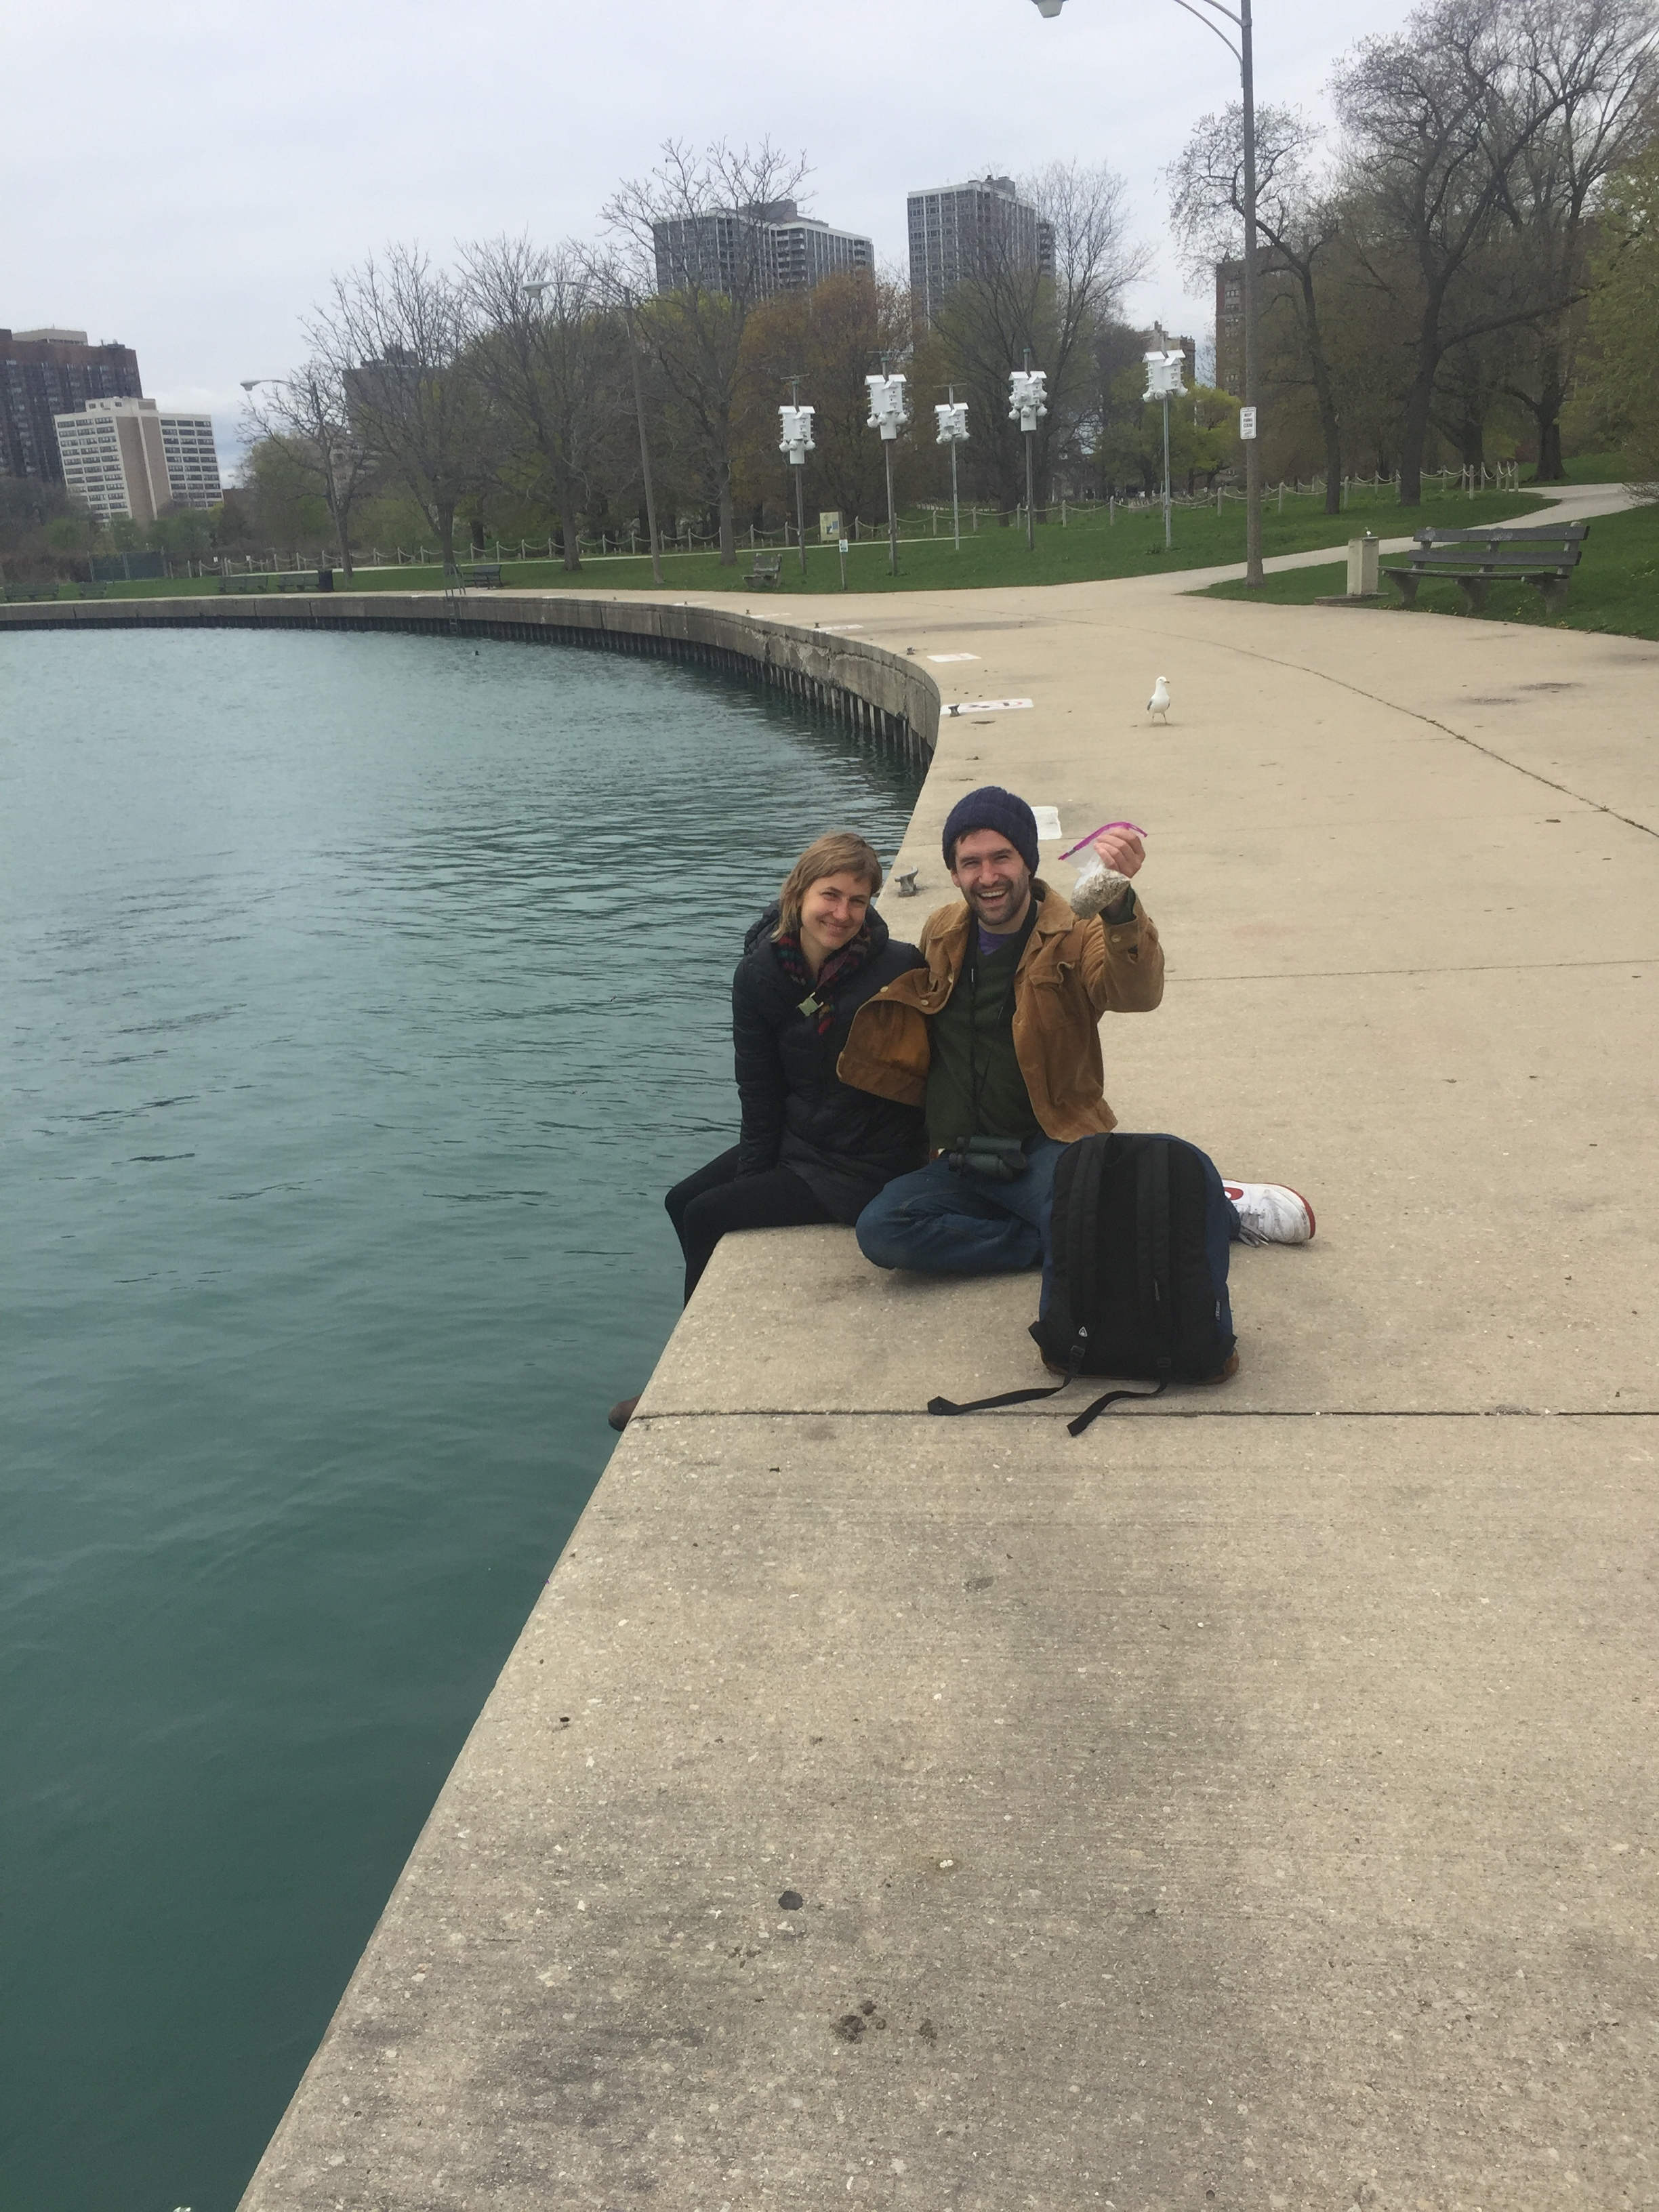 April 21, 2017. This is the only picture I have from this day. I remember because MY HANNAH was visiting. I got the news about the book being pulled while we were walking along the lake. I was simultaneously glad and sad Hannah was there. It was terrible news and I was crushed, so it was nice to have her there for support; but it was also so embarrassing. For over a year I'd said I was publishing a book. Now, suddenly, I wasn't.